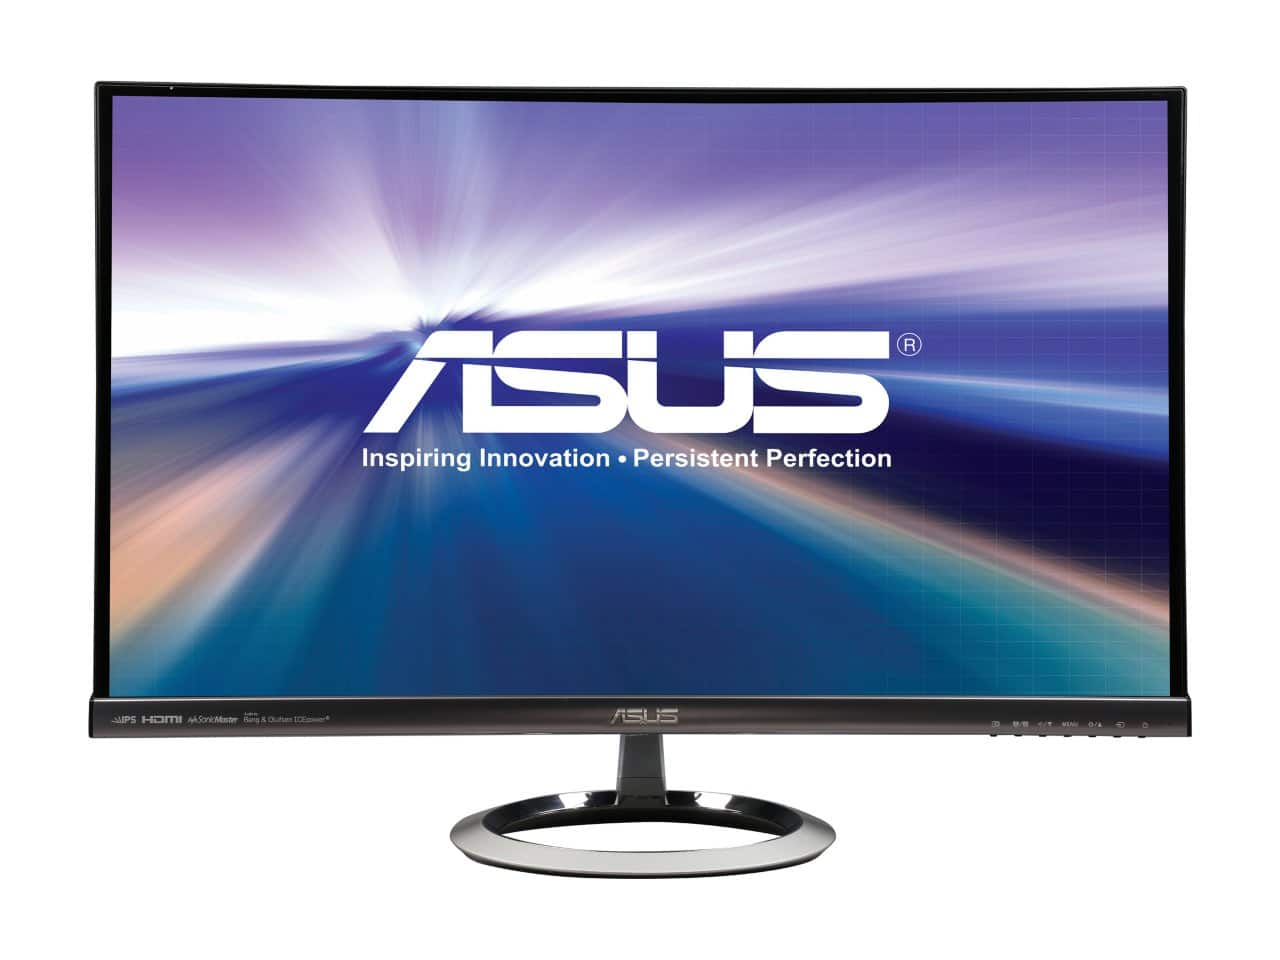 "Refurb. 27"" Asus MX279H 1920x1080 5ms IPS HDMI LED Monitor w/ Speakers for $154.99, 34"" LG 34UM94-P Ultrawide 3440x1440 IPS  5ms LED Monitor for $589.99 + S&H & More @ Newegg.com"